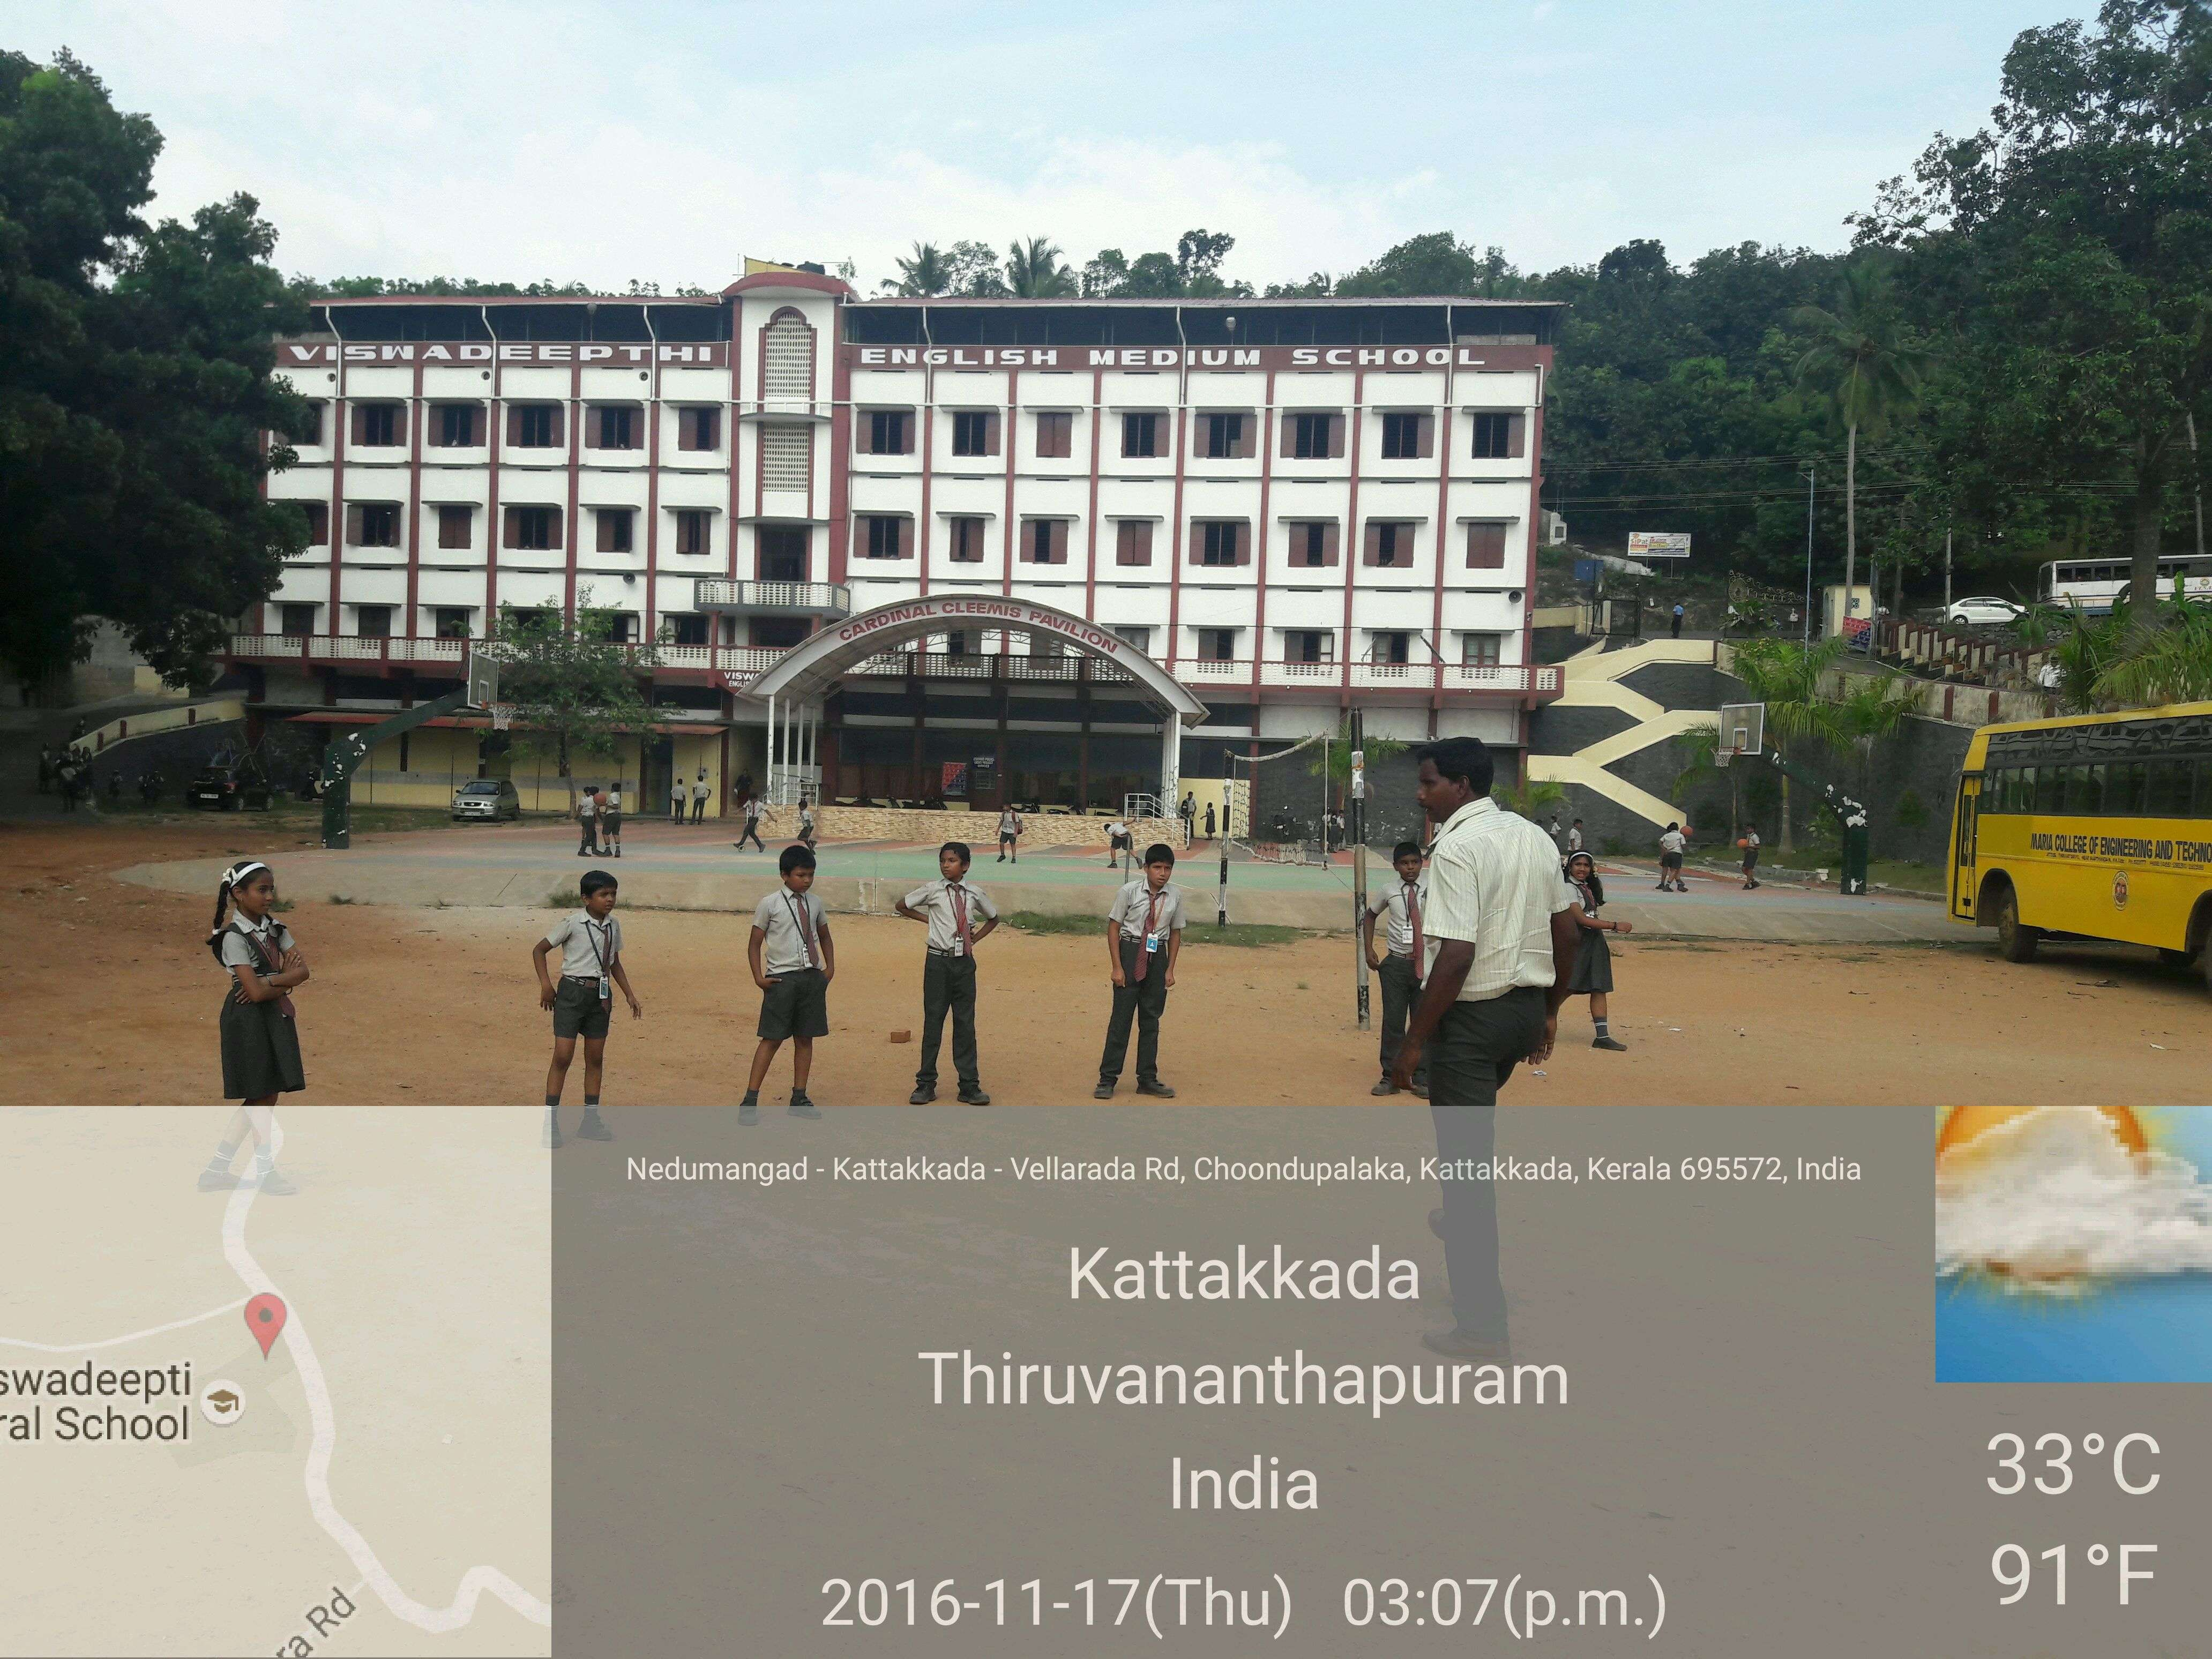 VISWADEEPTTI ENGLISH MEDIUM SCHOOL CHARUPARA KATTAKADA PO THIRUVANTHAPURAM KERALA 930536